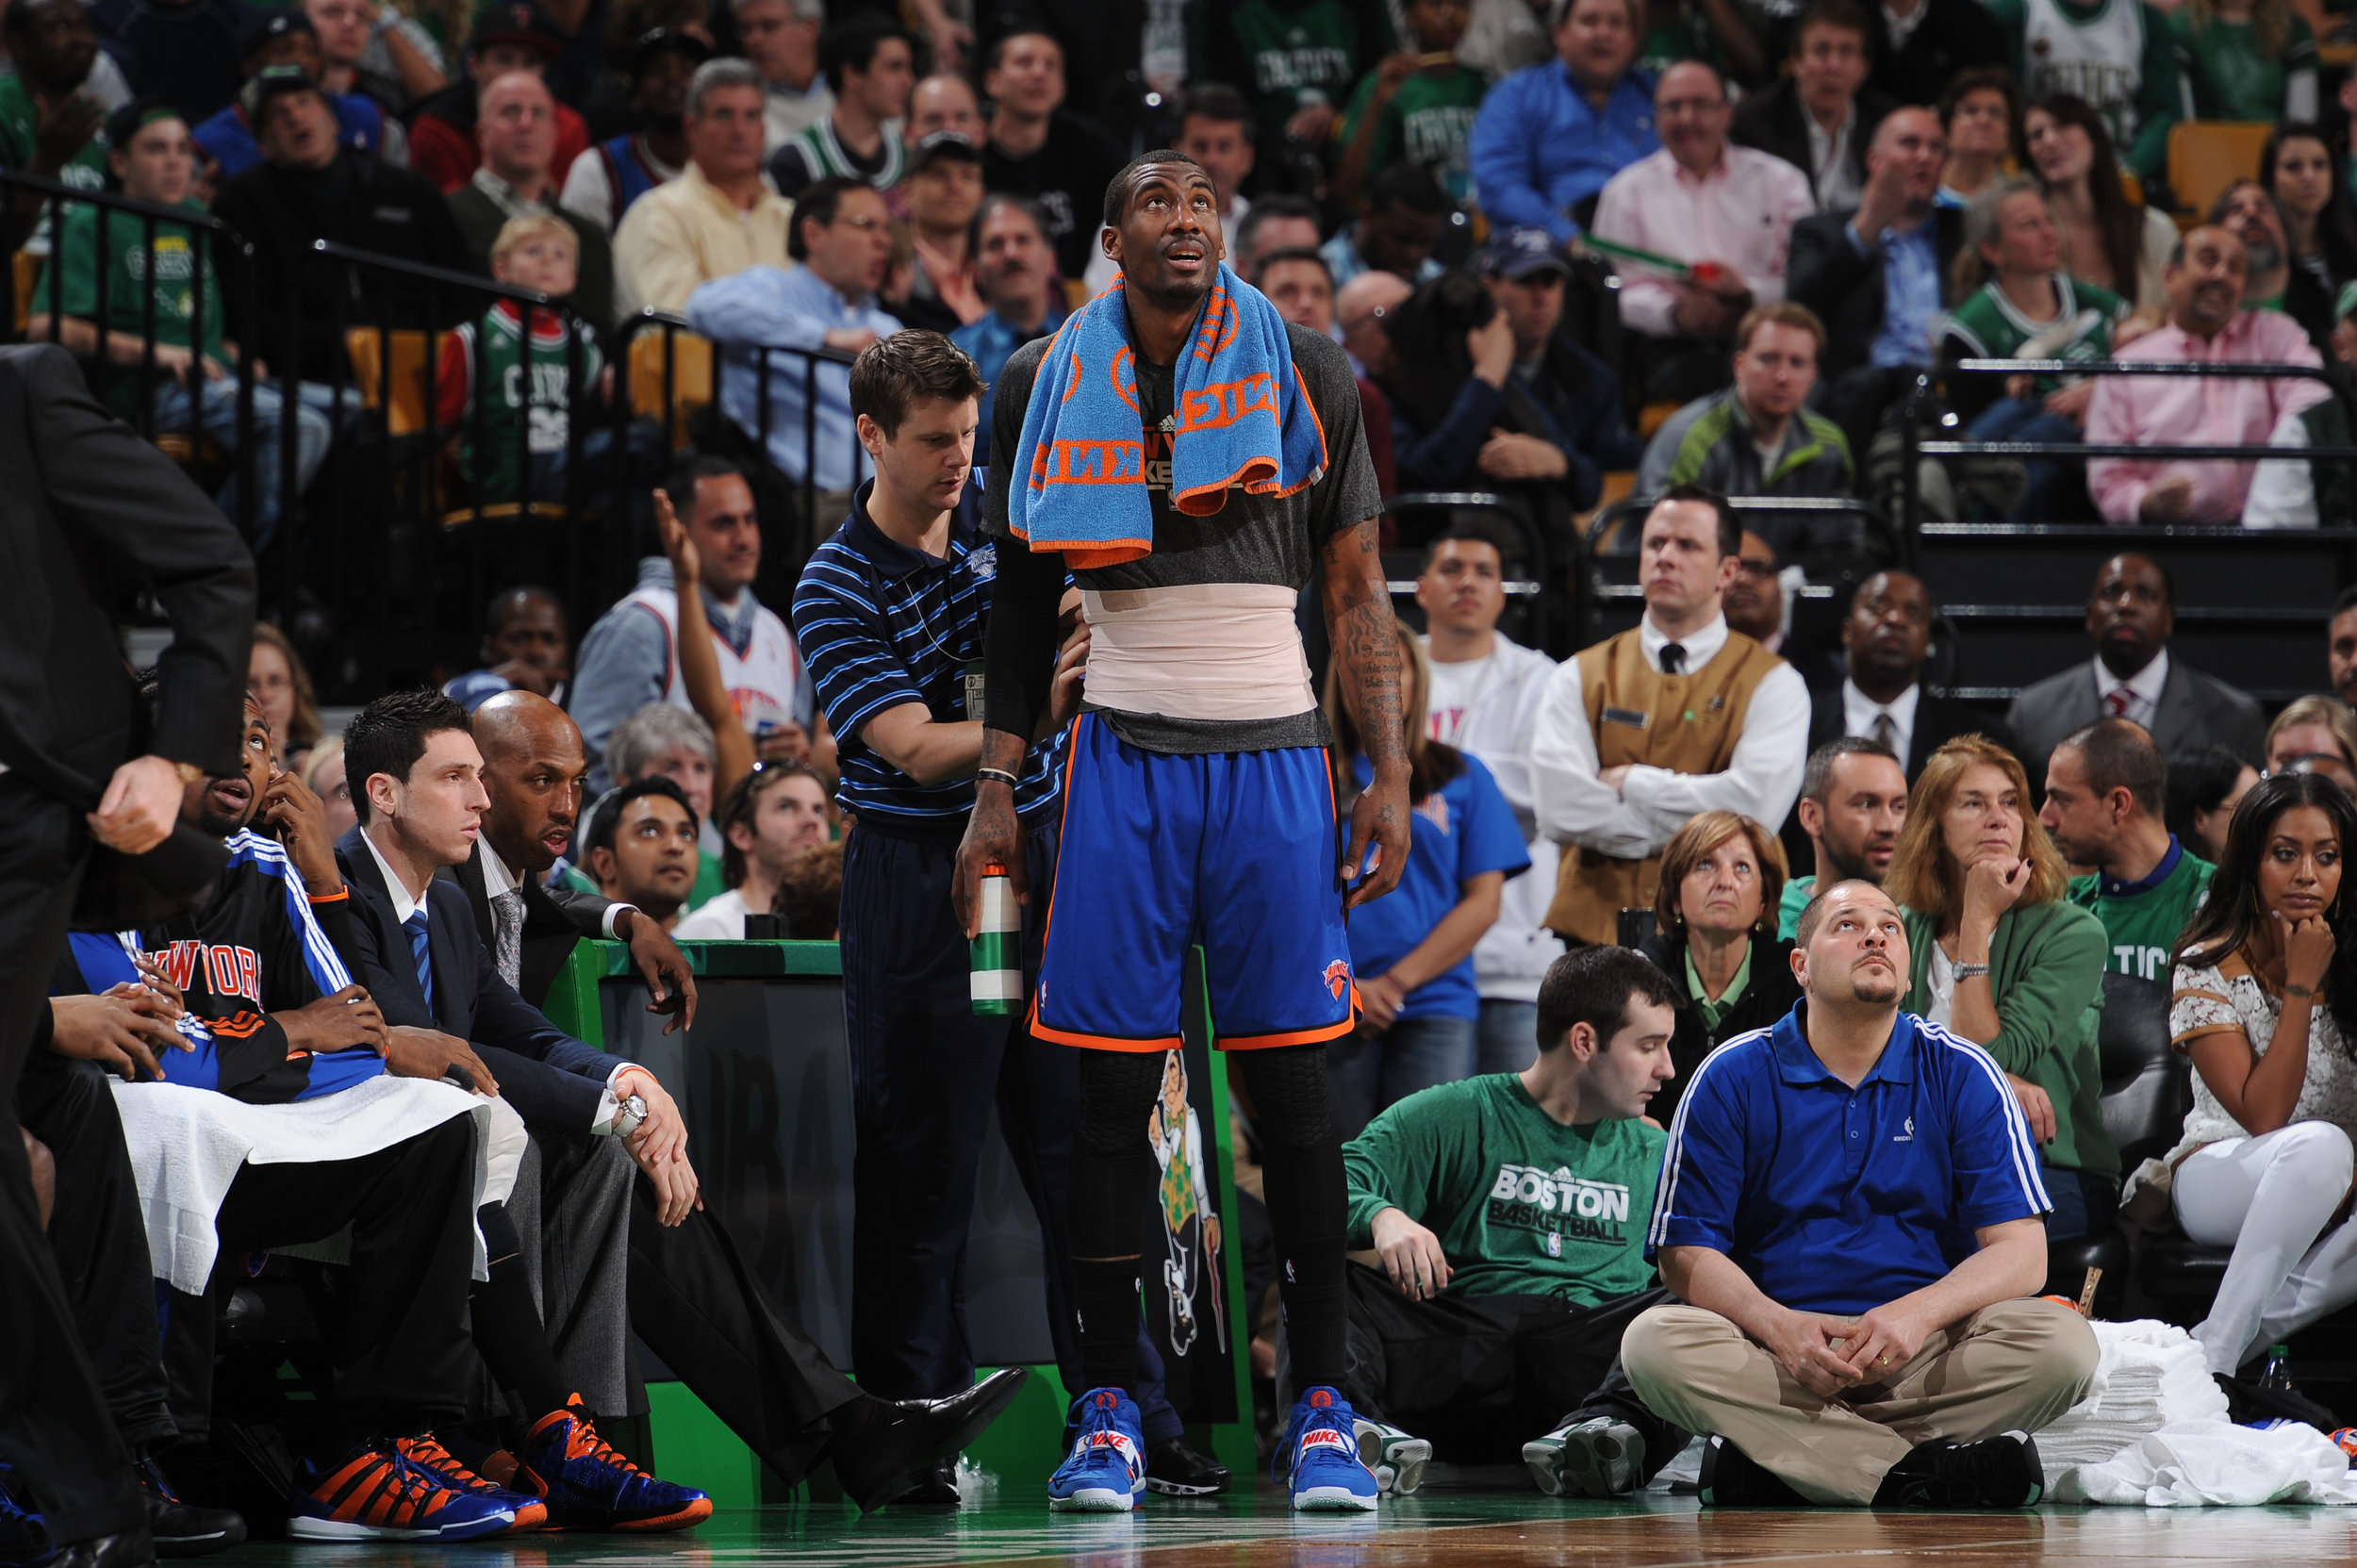 Amare Stoudemire Andy Barr New York Knicks Physical Therapy Services.jpg